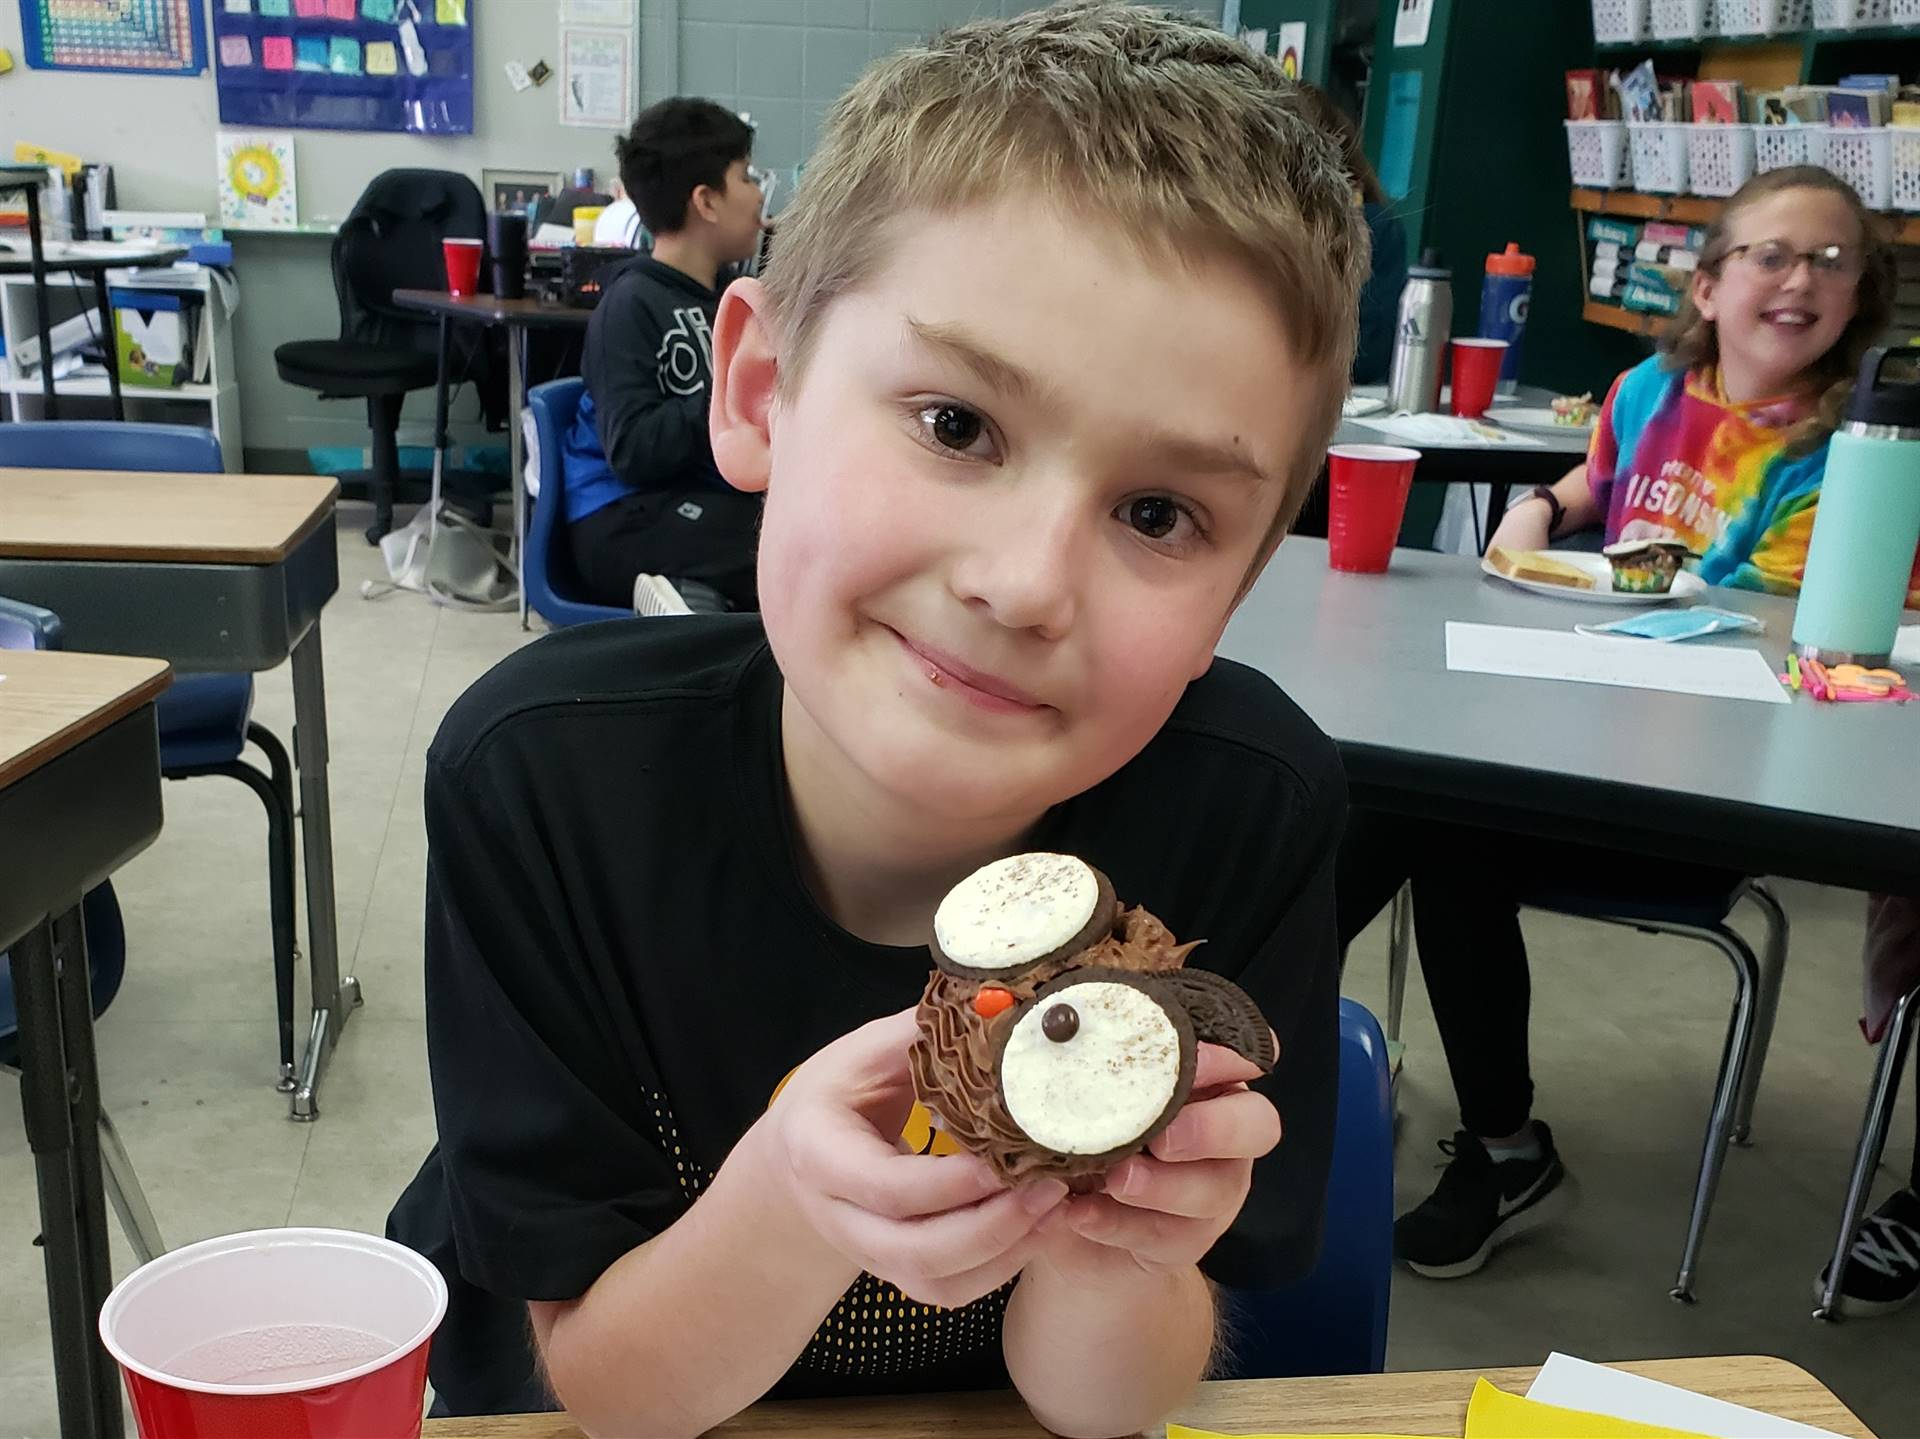 Student smiling with cupcake